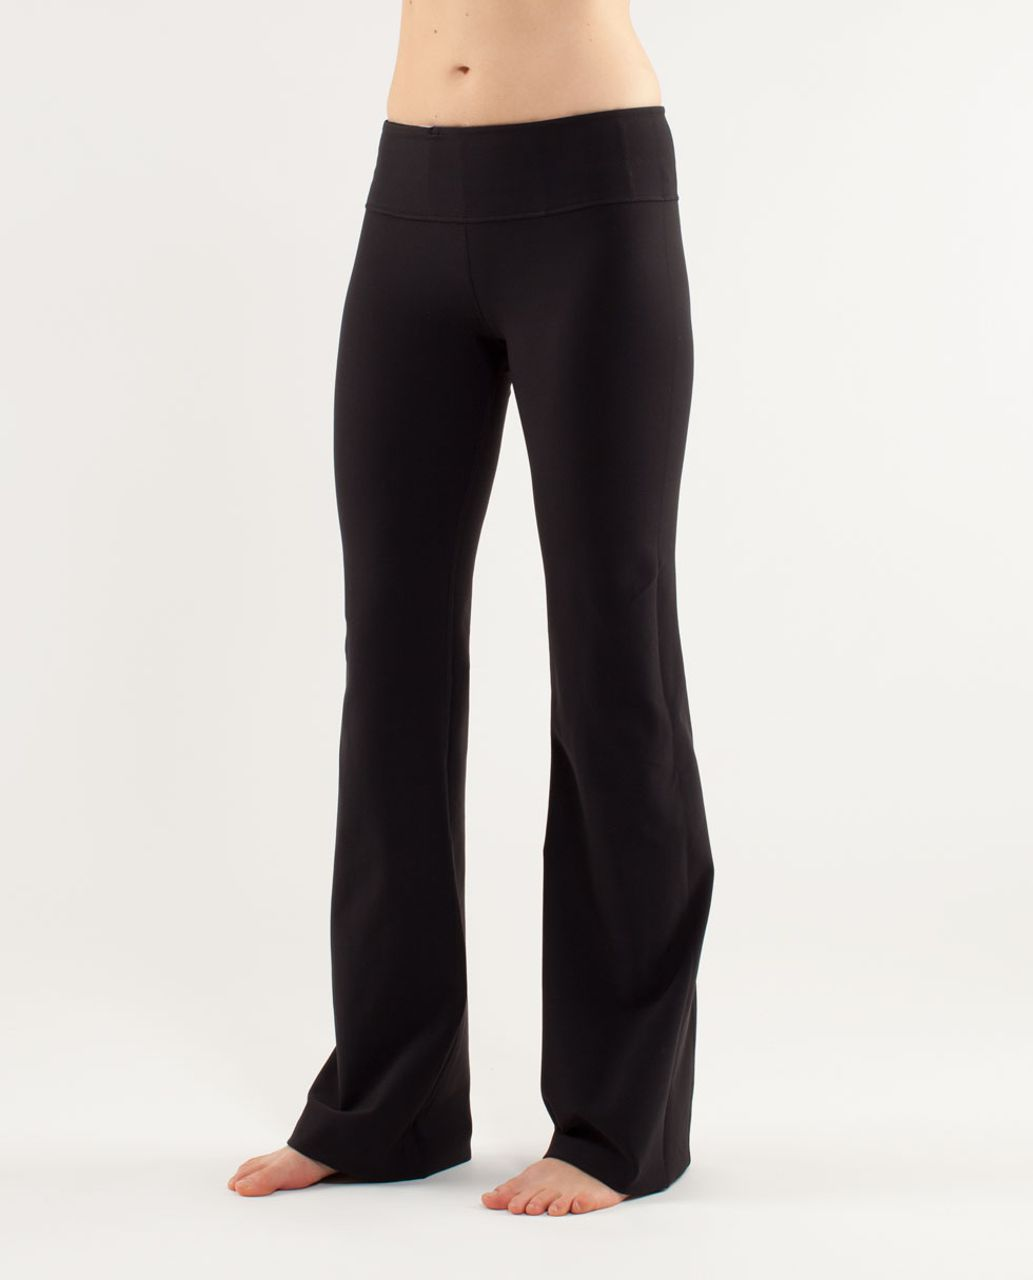 Lululemon Groove Pant (Tall) - Black /  Quilting Spring 10